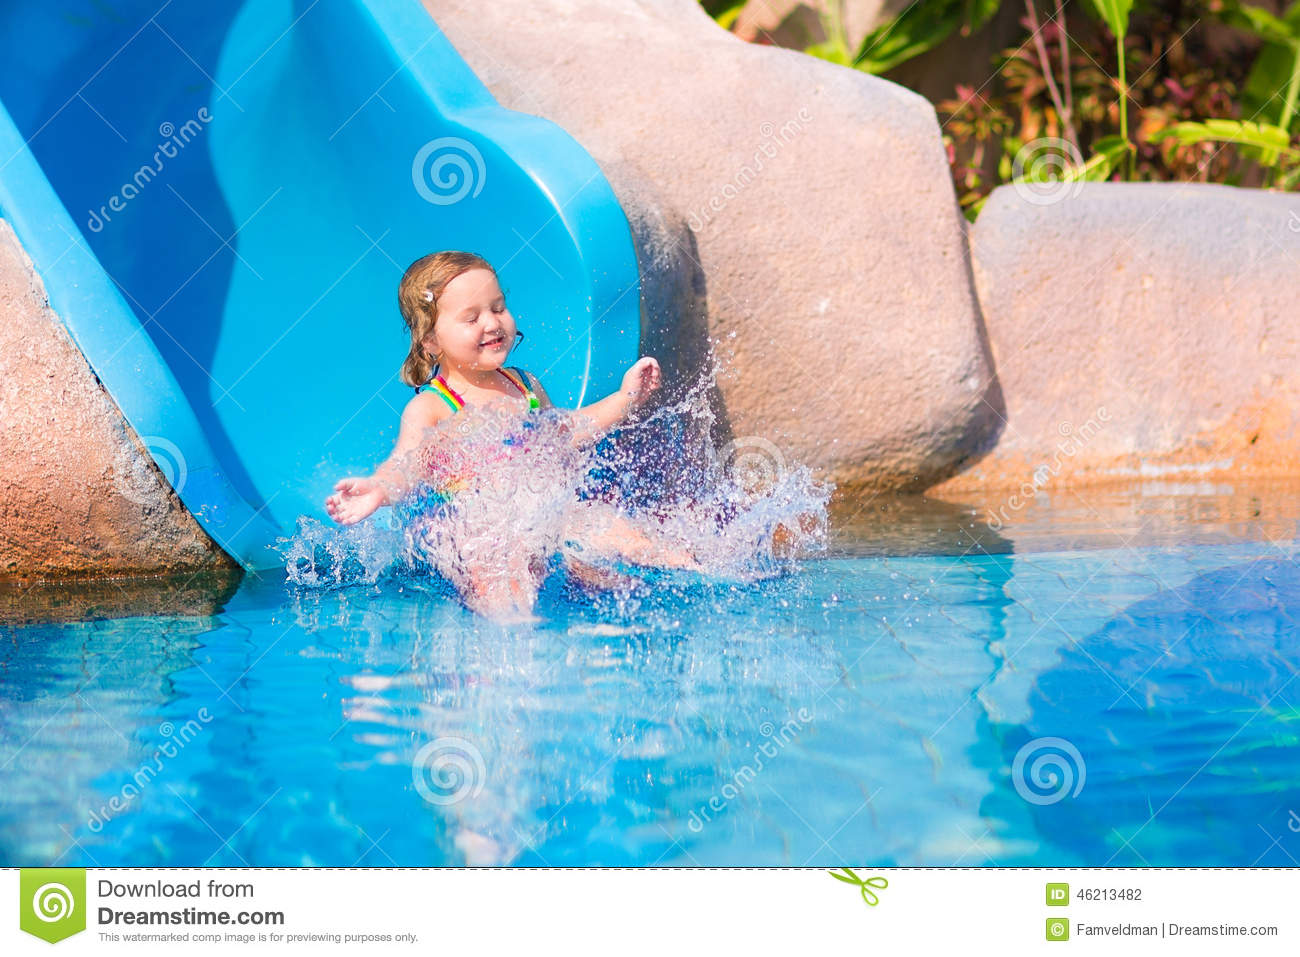 Child On Water Slide Stock Photo Image Of Pool People 46213482